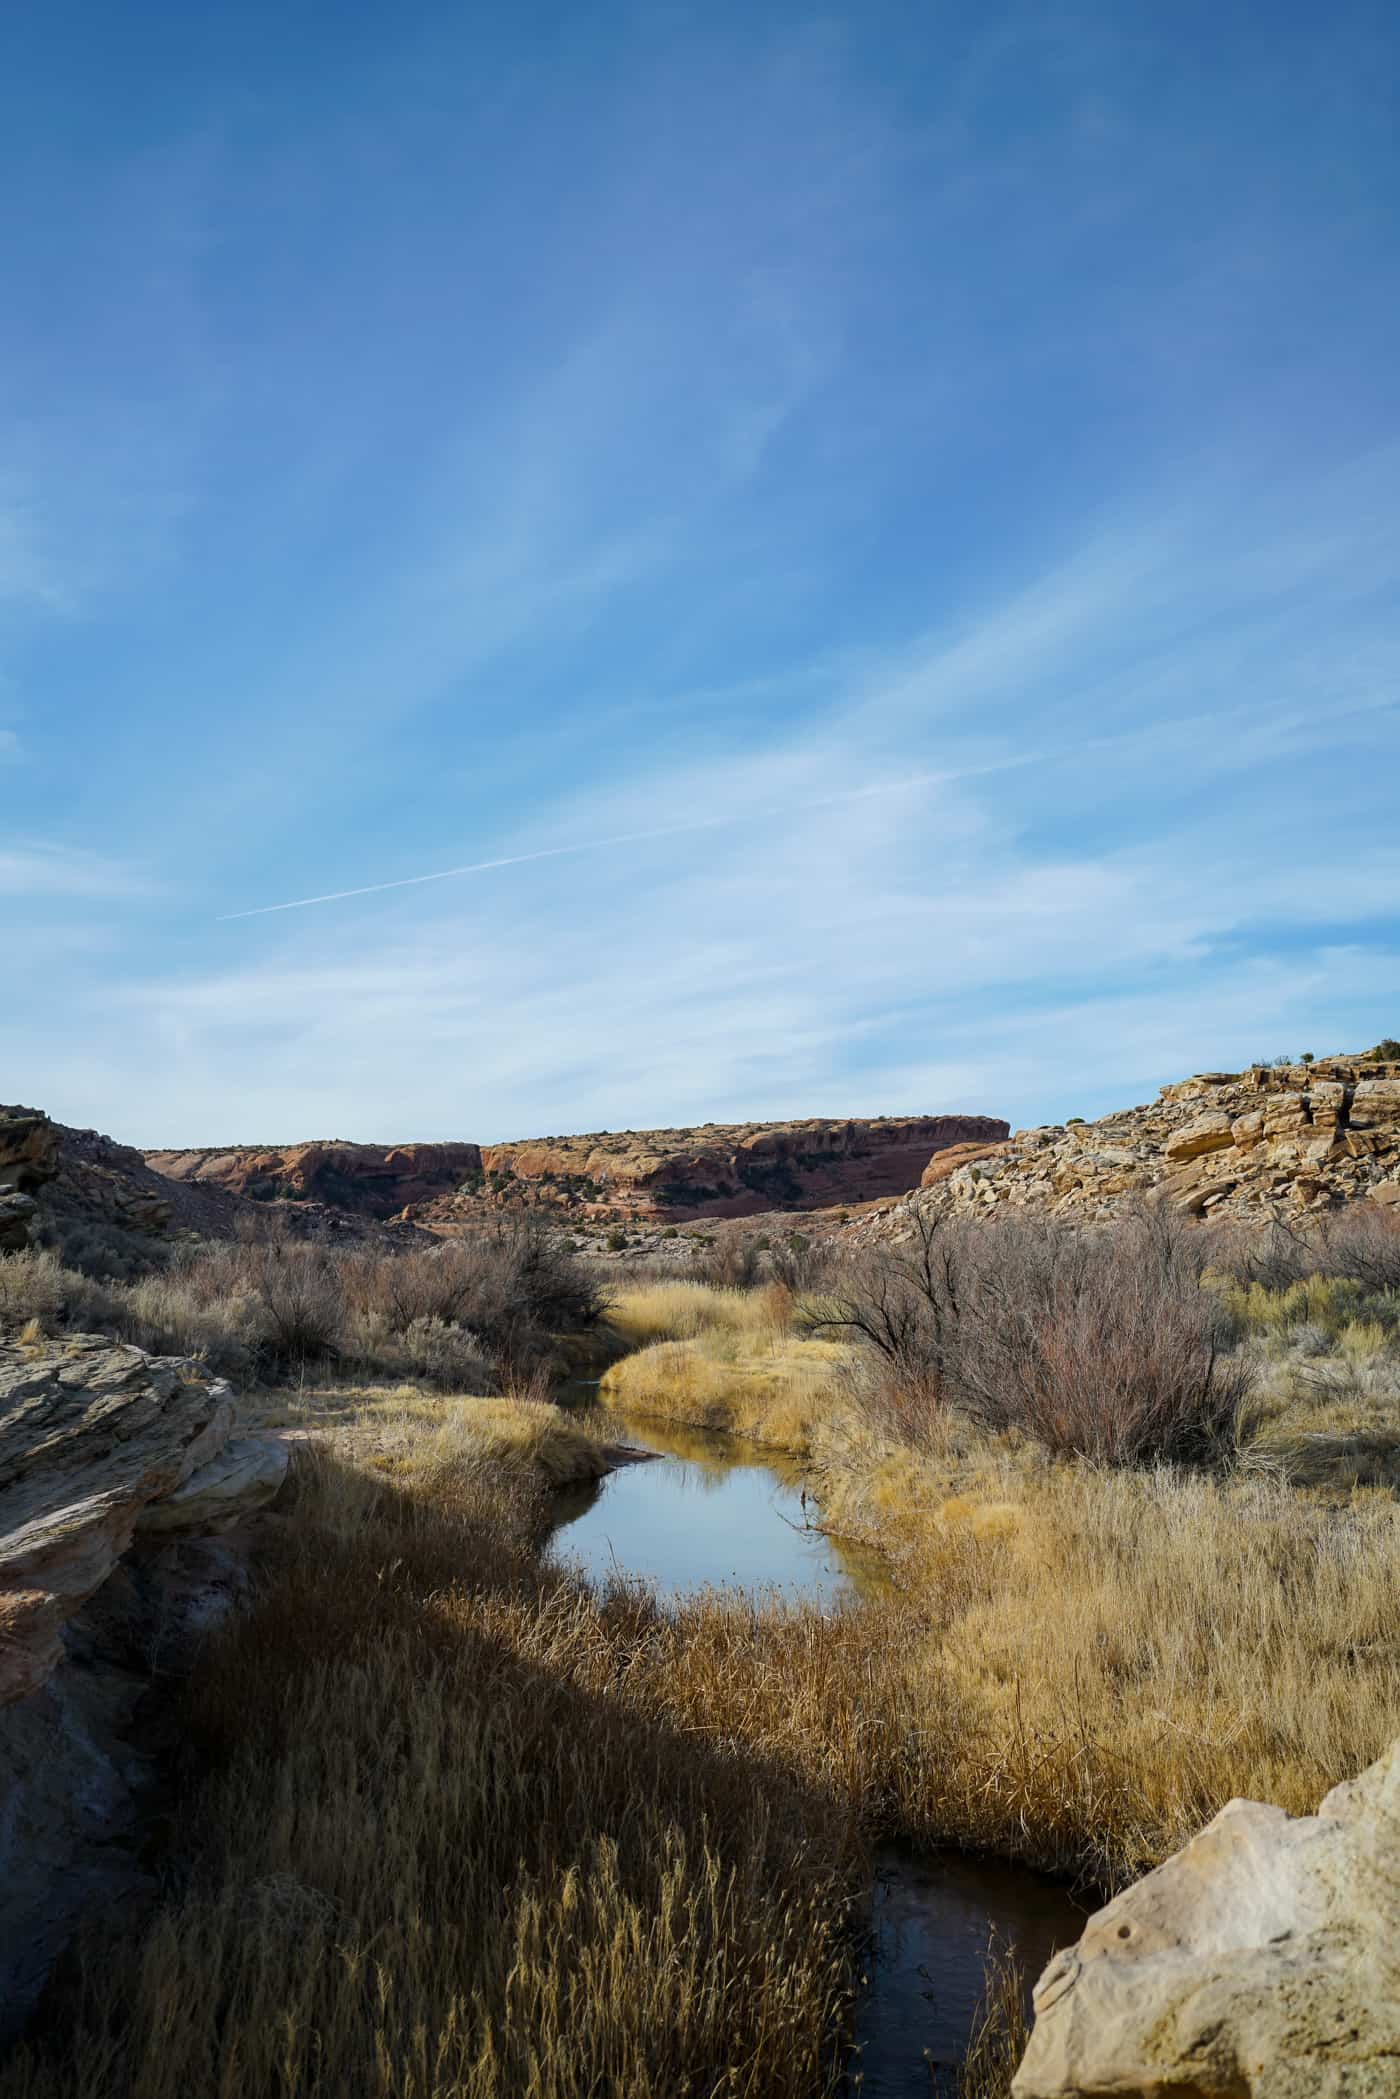 A field along the Colorado River in Moab Utah.